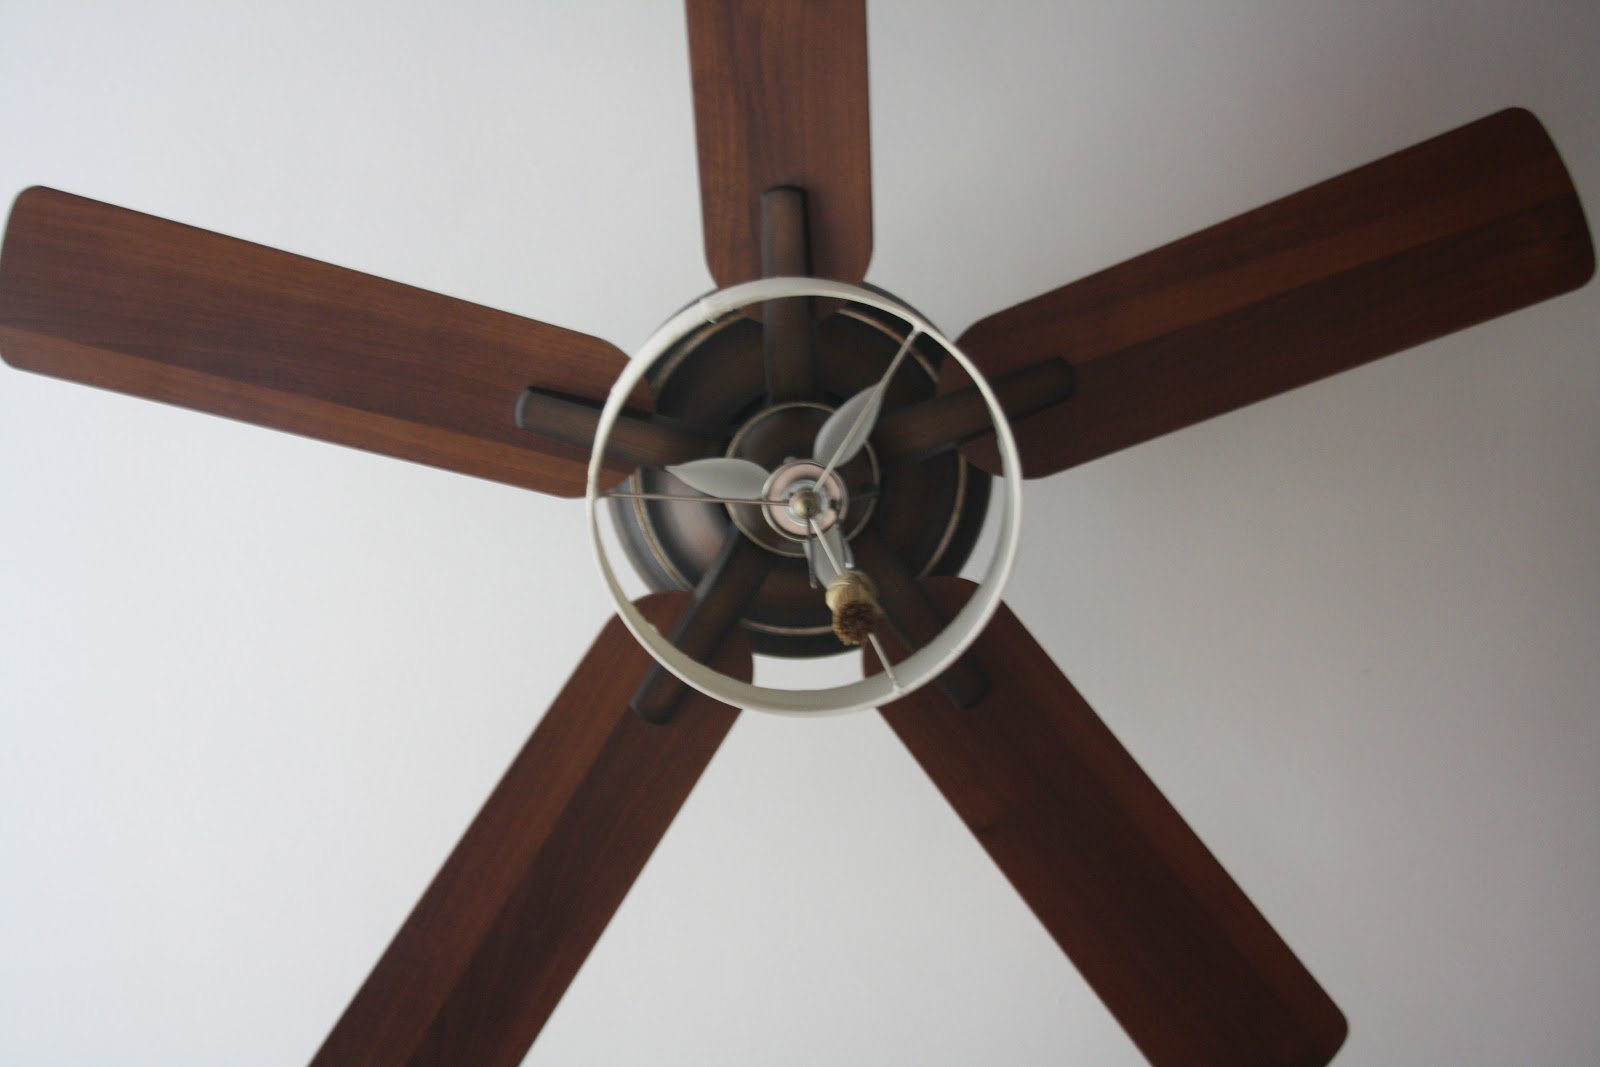 view from below with diy drumshade, no diffuser